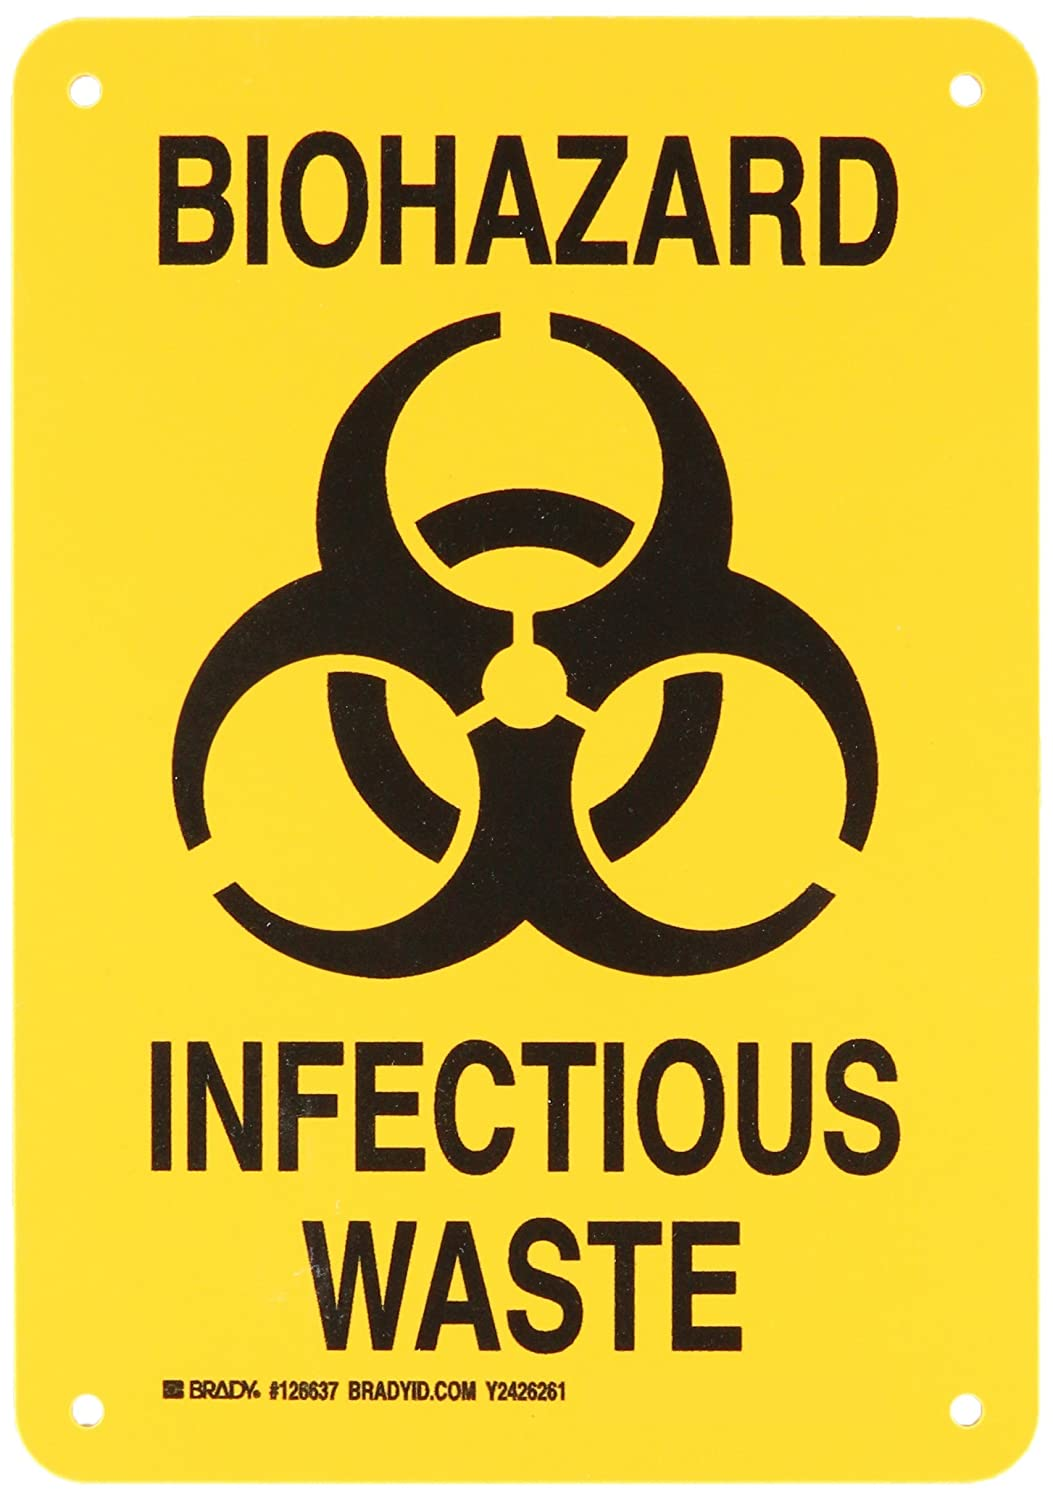 Infectious waste symbol choice image symbol and sign ideas infectious waste symbol image collections symbol and sign ideas brady 126637 biohazard sign legend biohazard infectious biocorpaavc